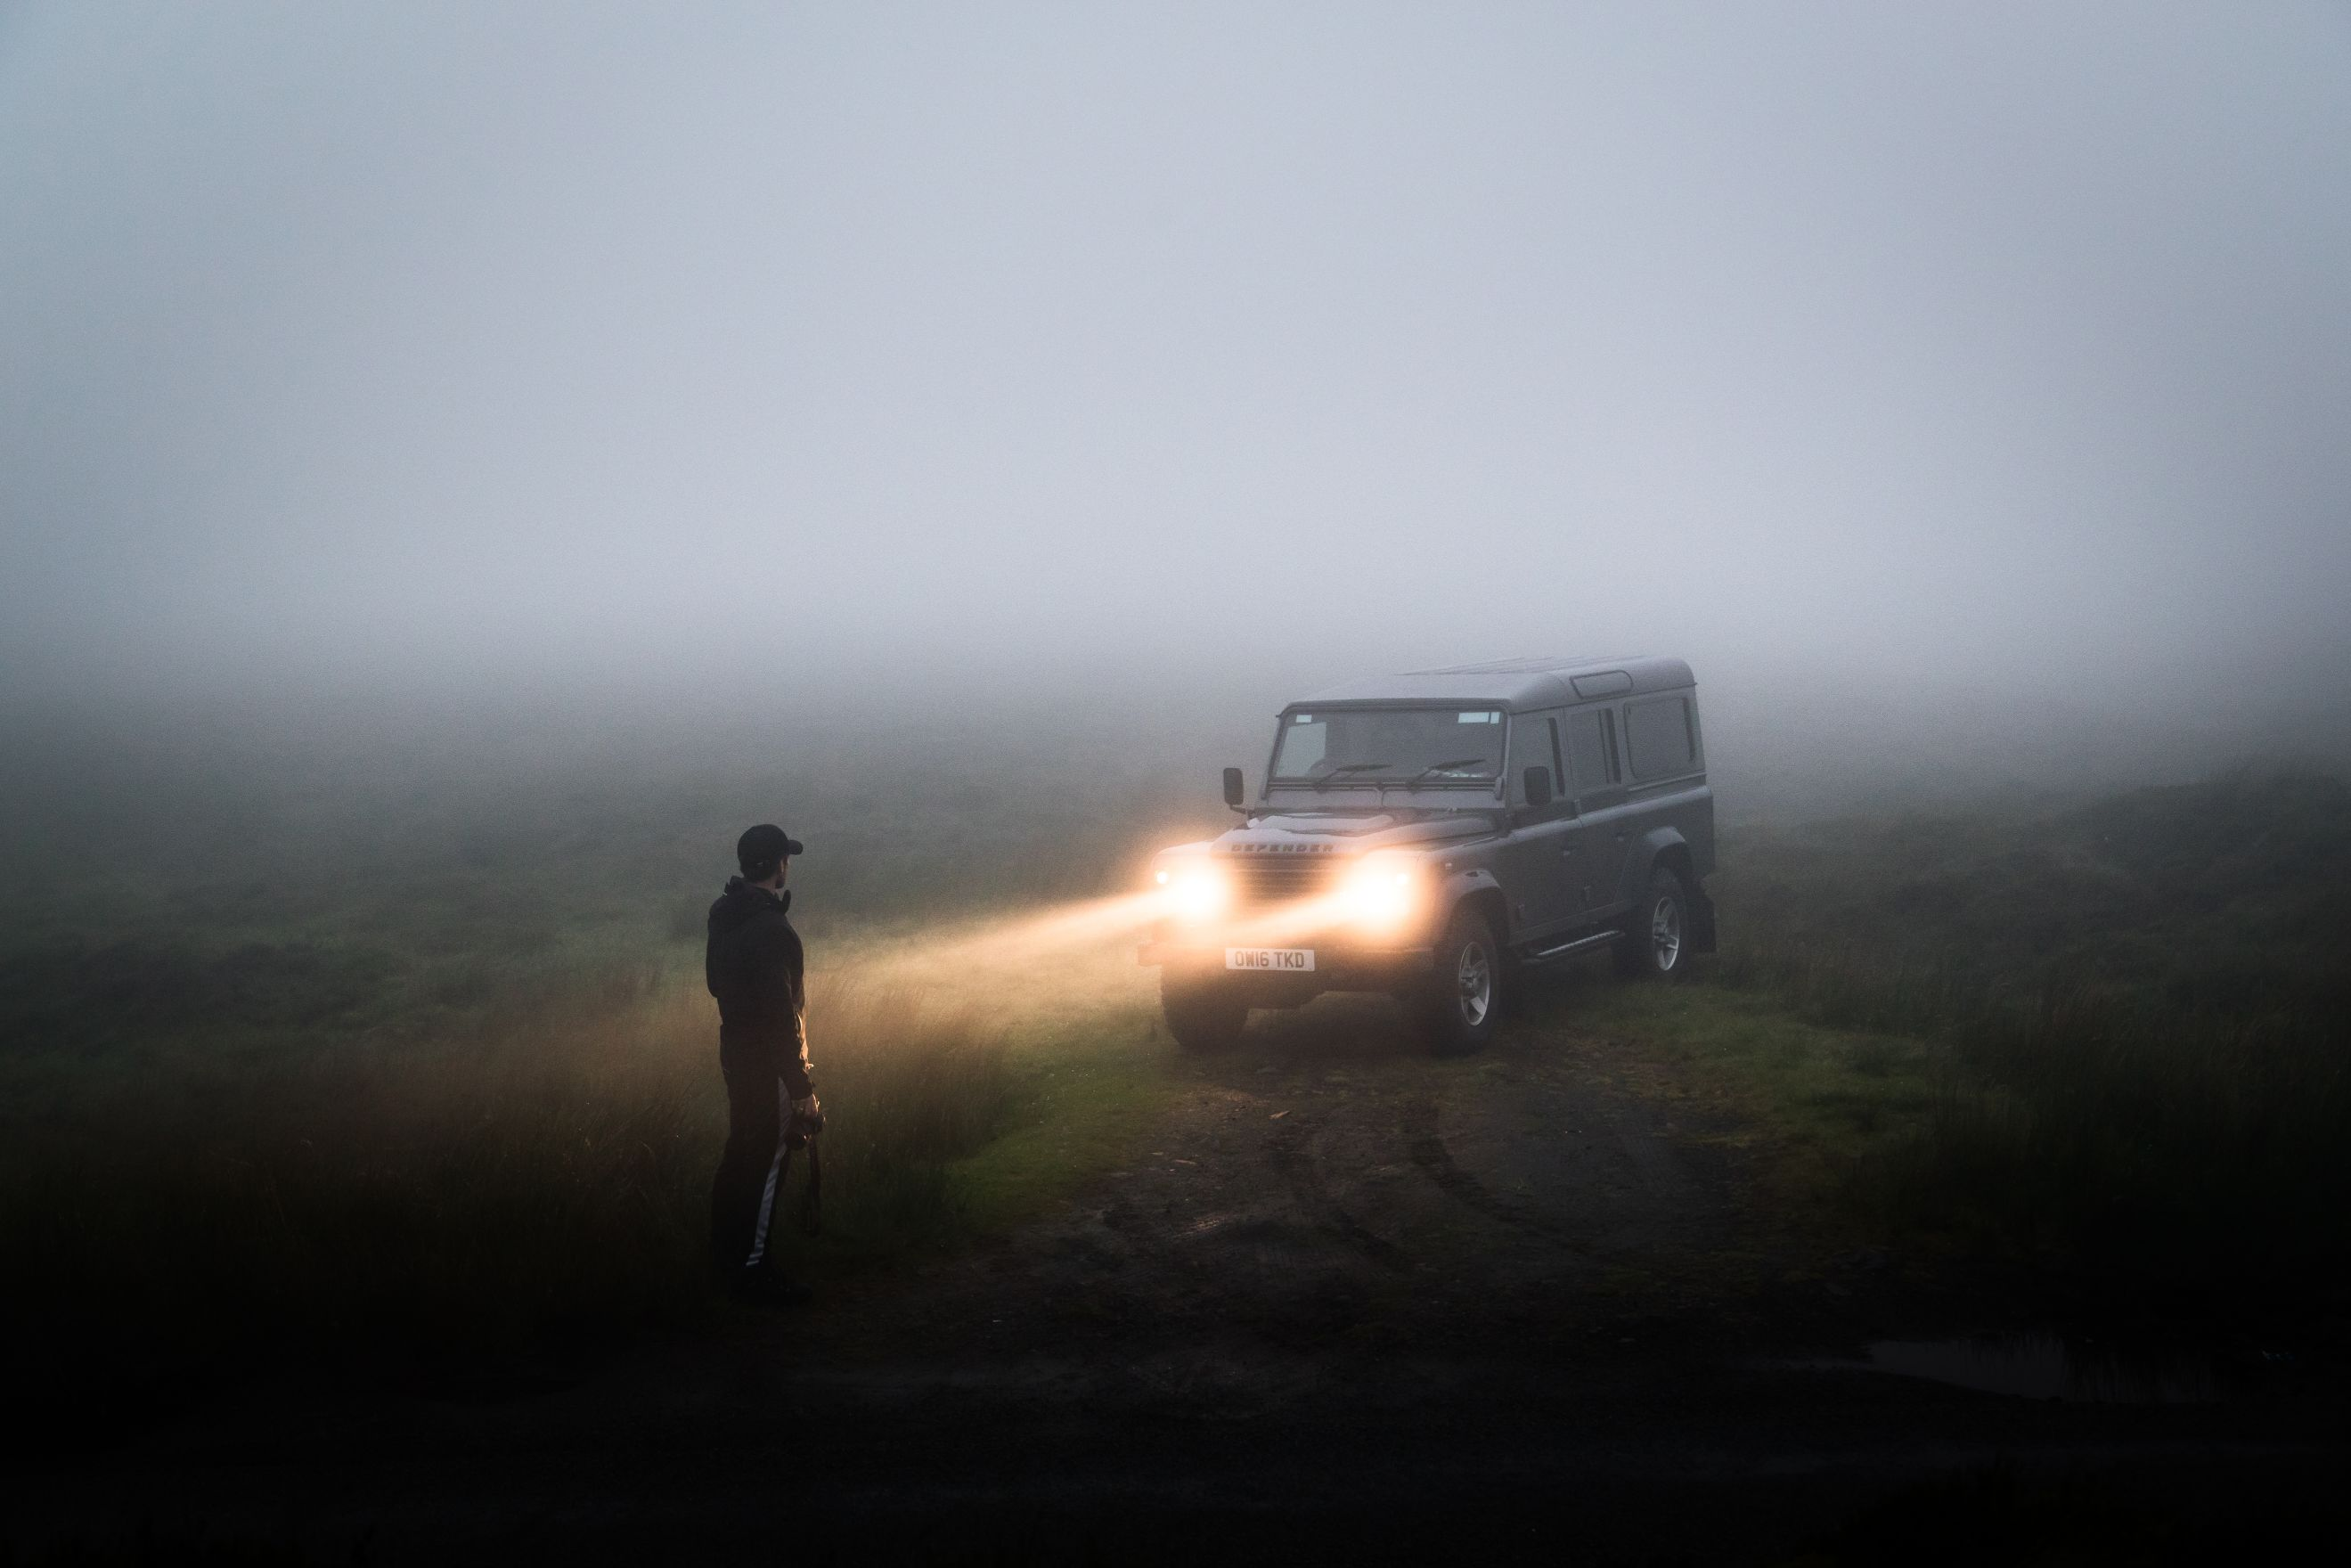 Car shining its lights onto a man standing amongst the mist.